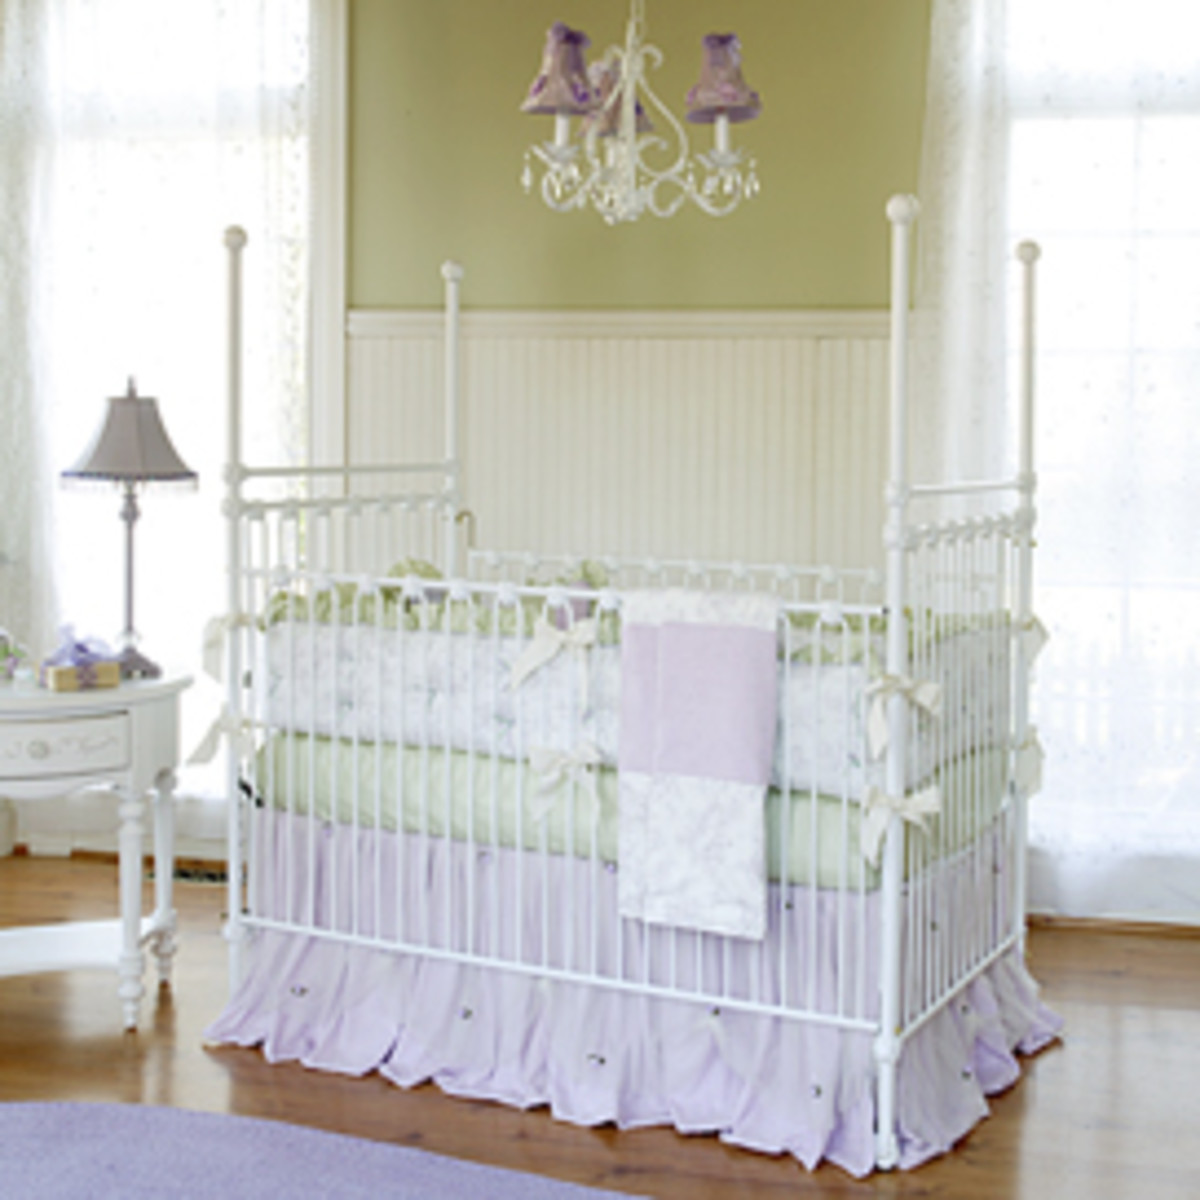 Lavender Dreams room design by Posh Tots